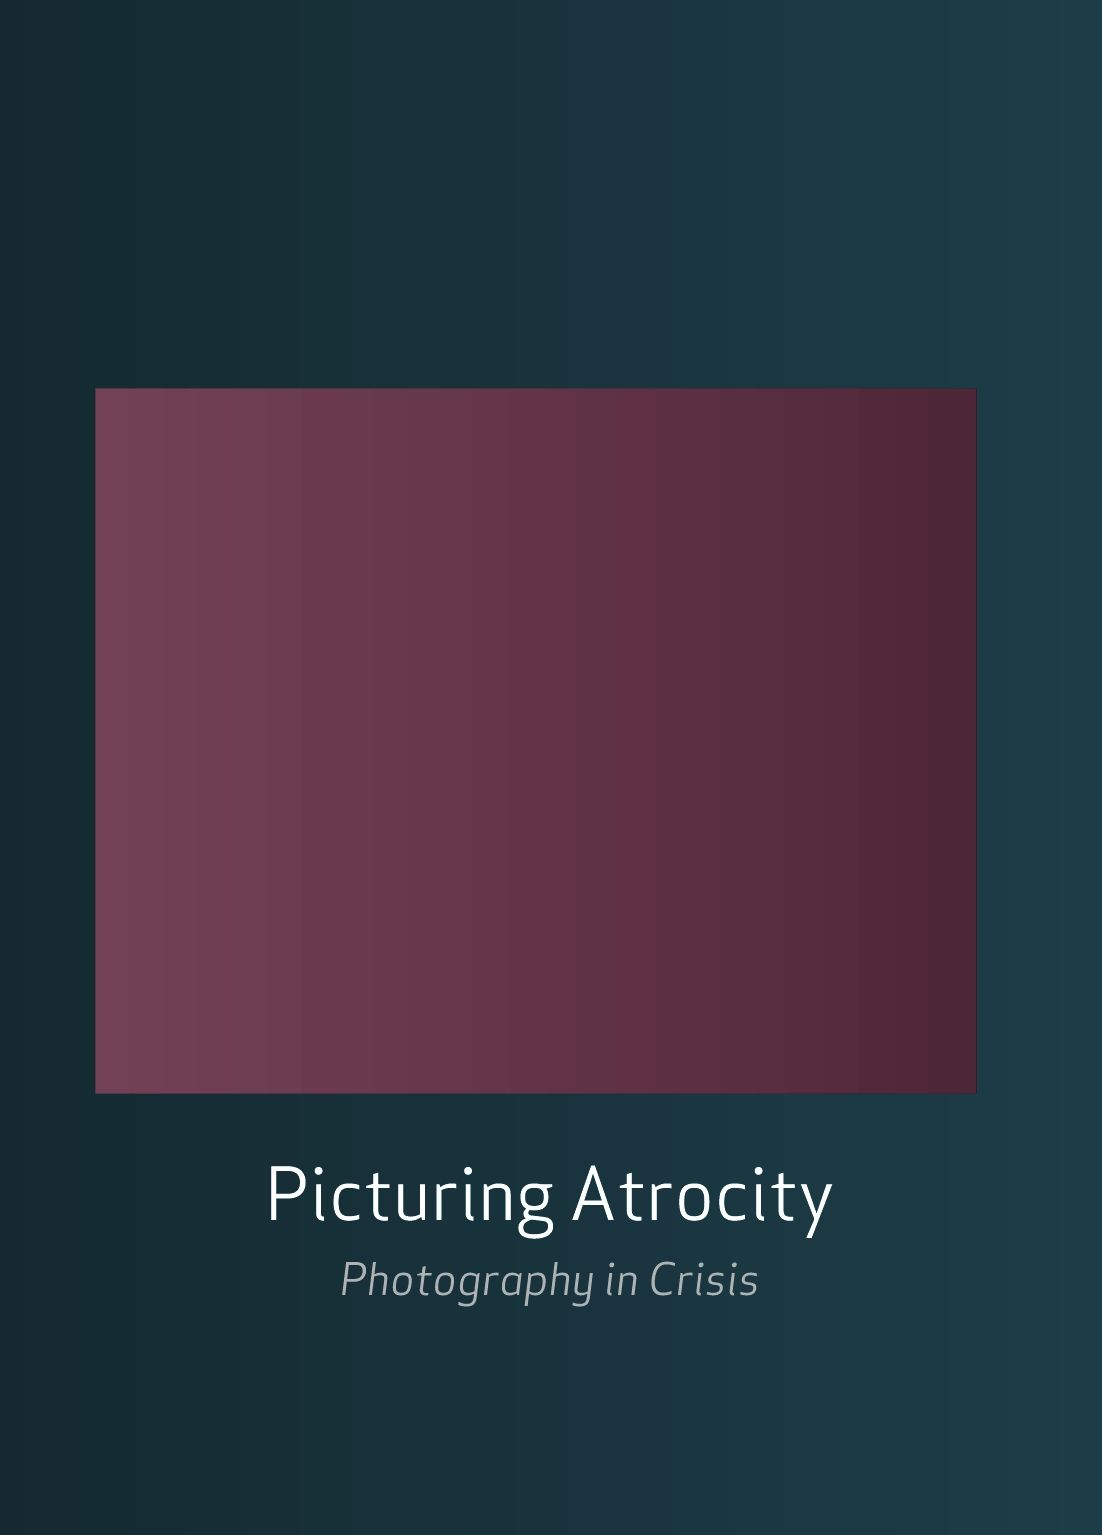 Picturing Atrocity